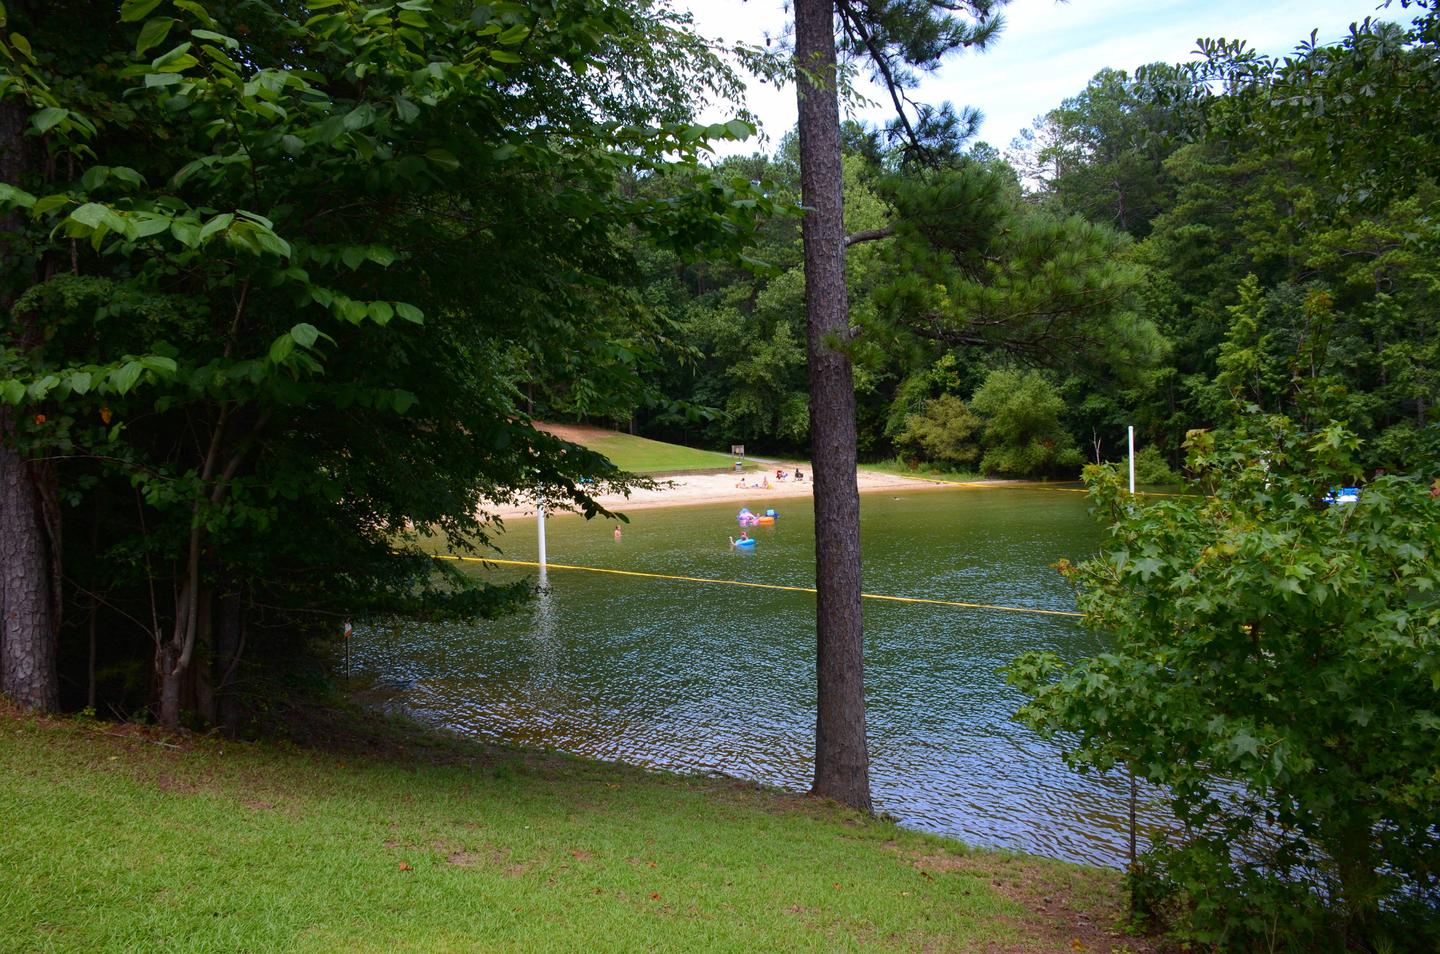 McKinney Campground Beach 3.McKinney Campground beach.